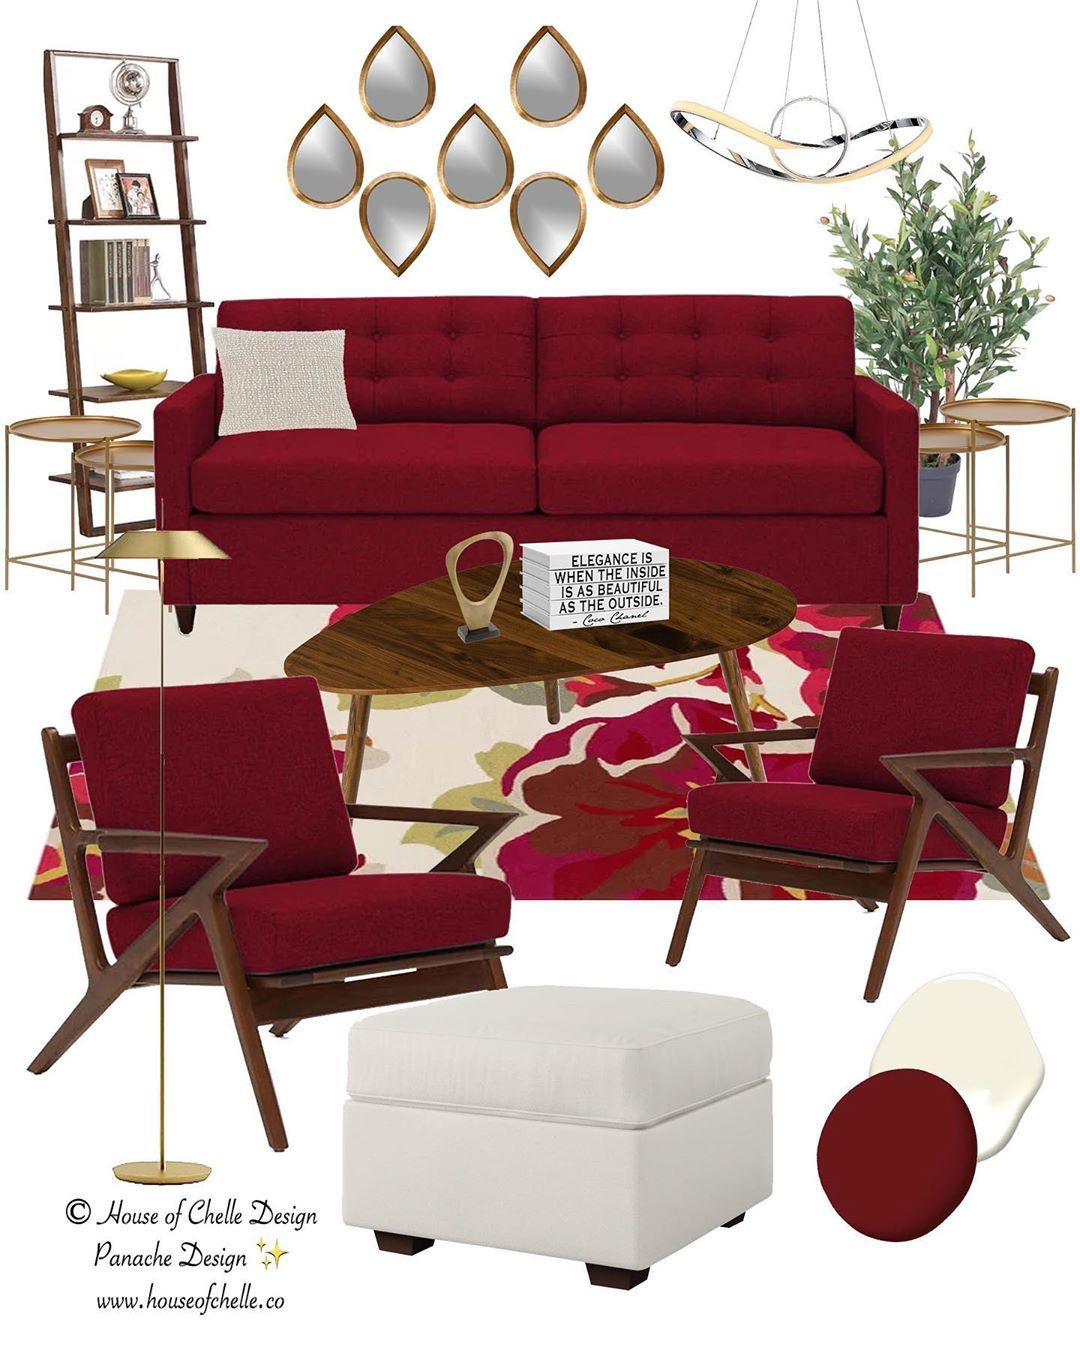 Design Your Room Virtual: Mid Century Interior Design With A Modern Twist Need A Bit